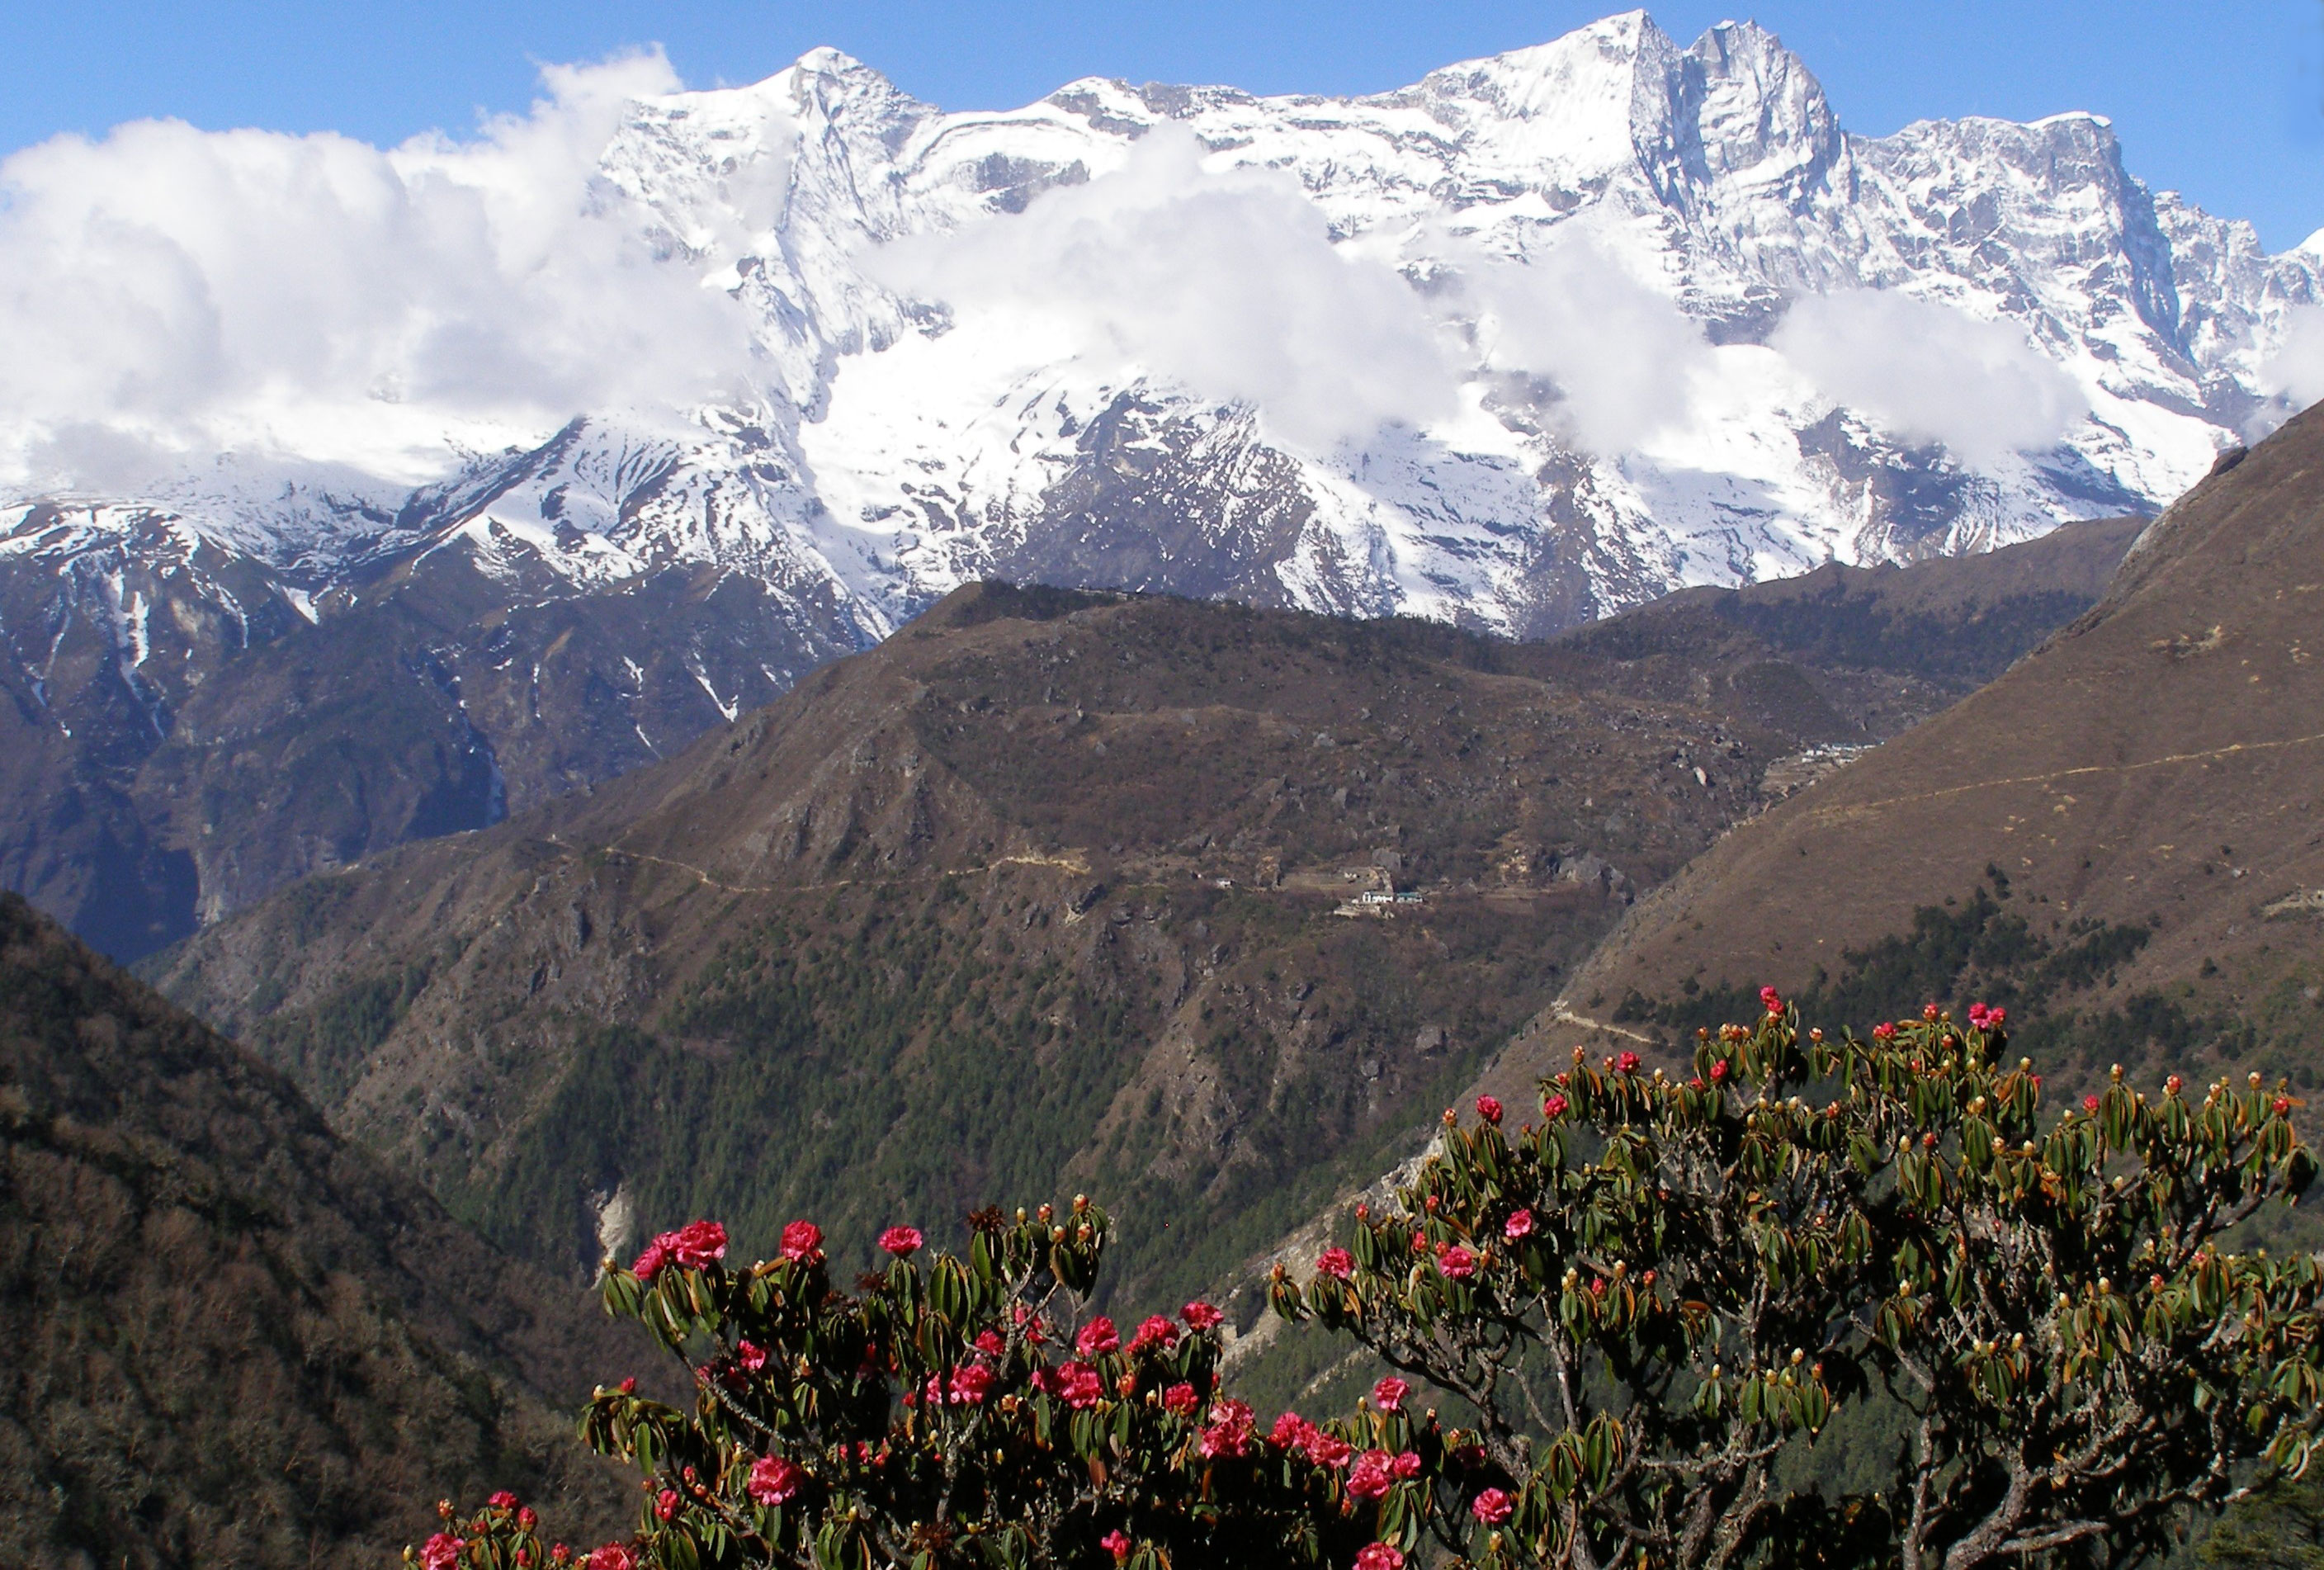 Tengboche Everest Panorama Trek Khumbu Valley Trekking Hike Hiking Nepal